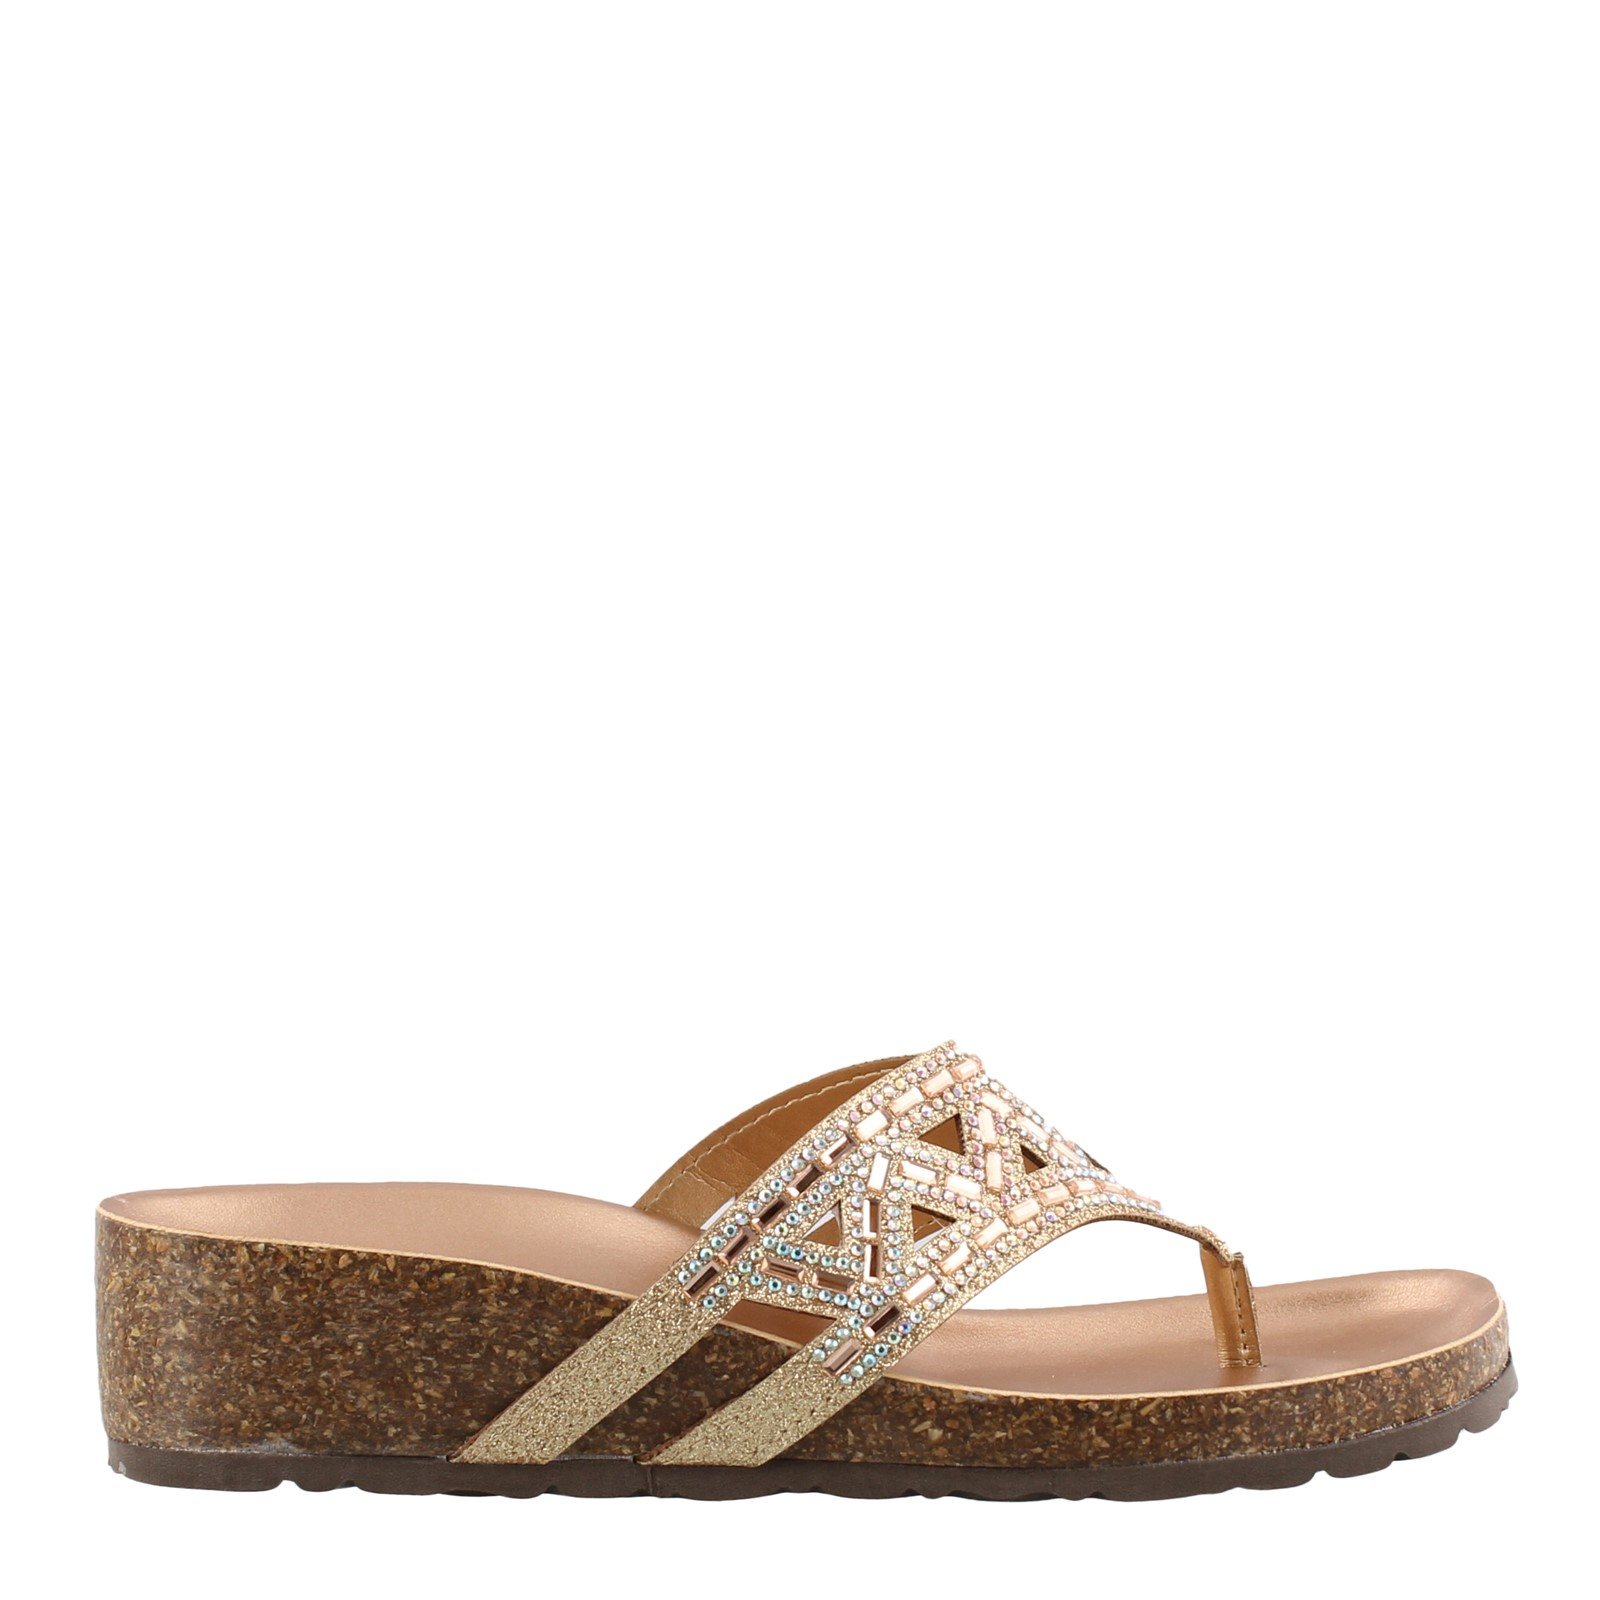 Women's Italian Shoemakers, Emilie Thong Sandals